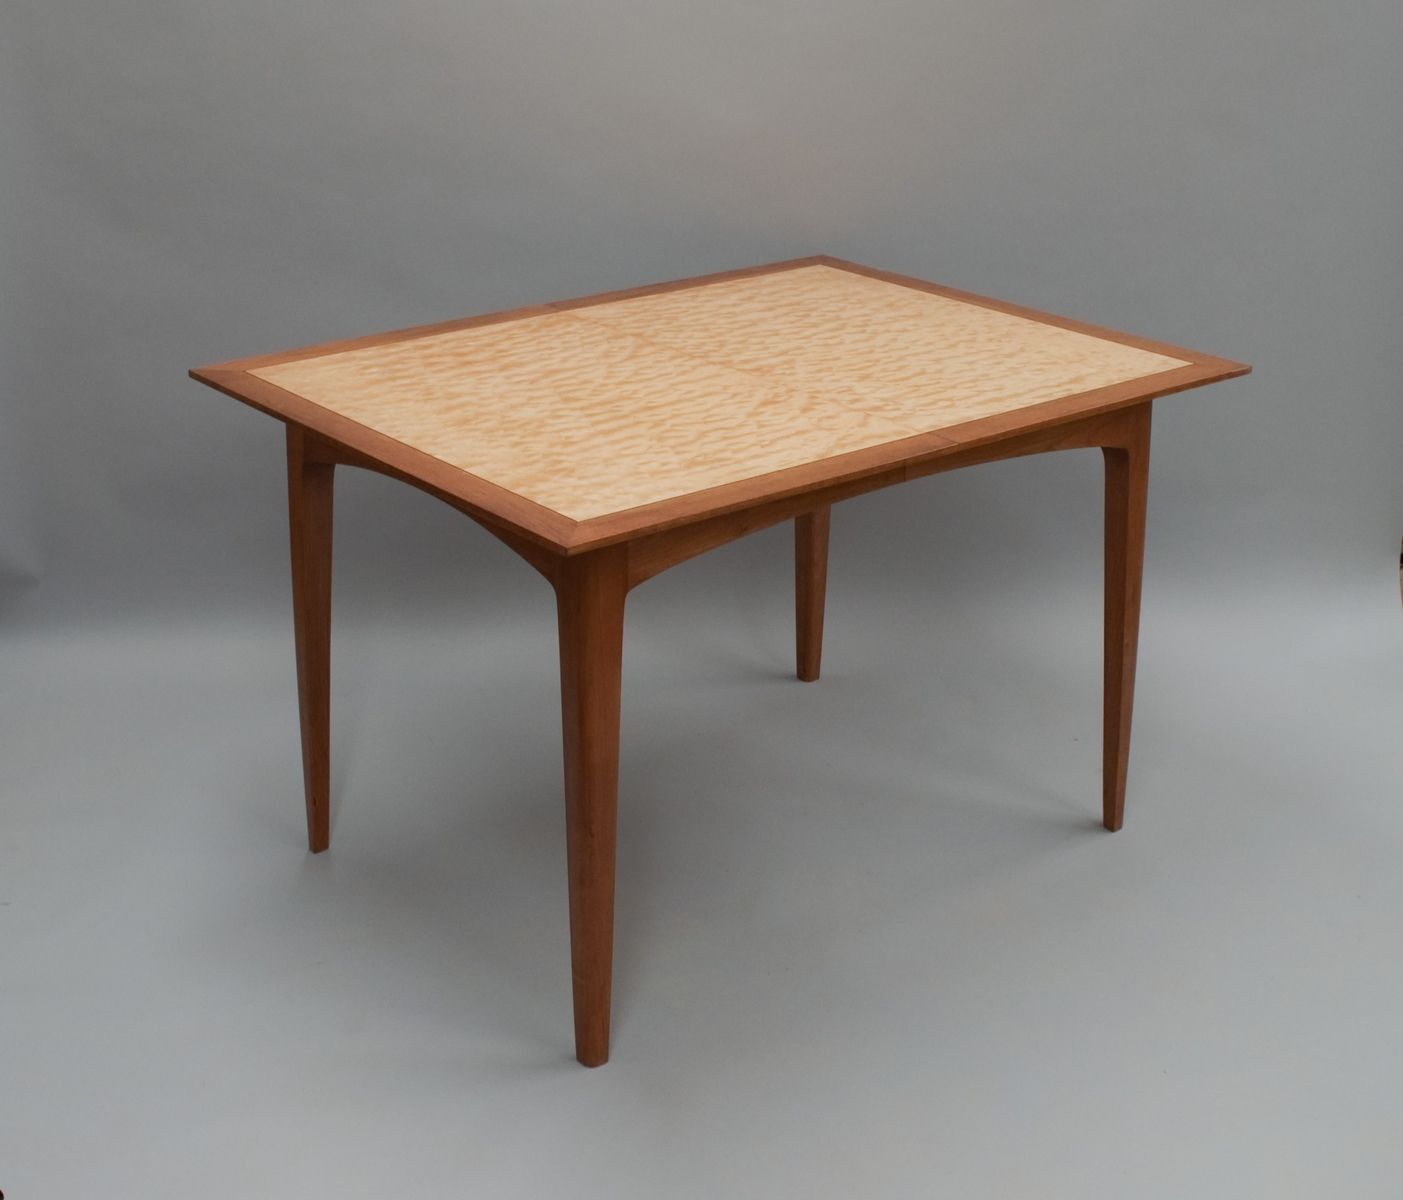 custom made mid century modern tablecherry brook